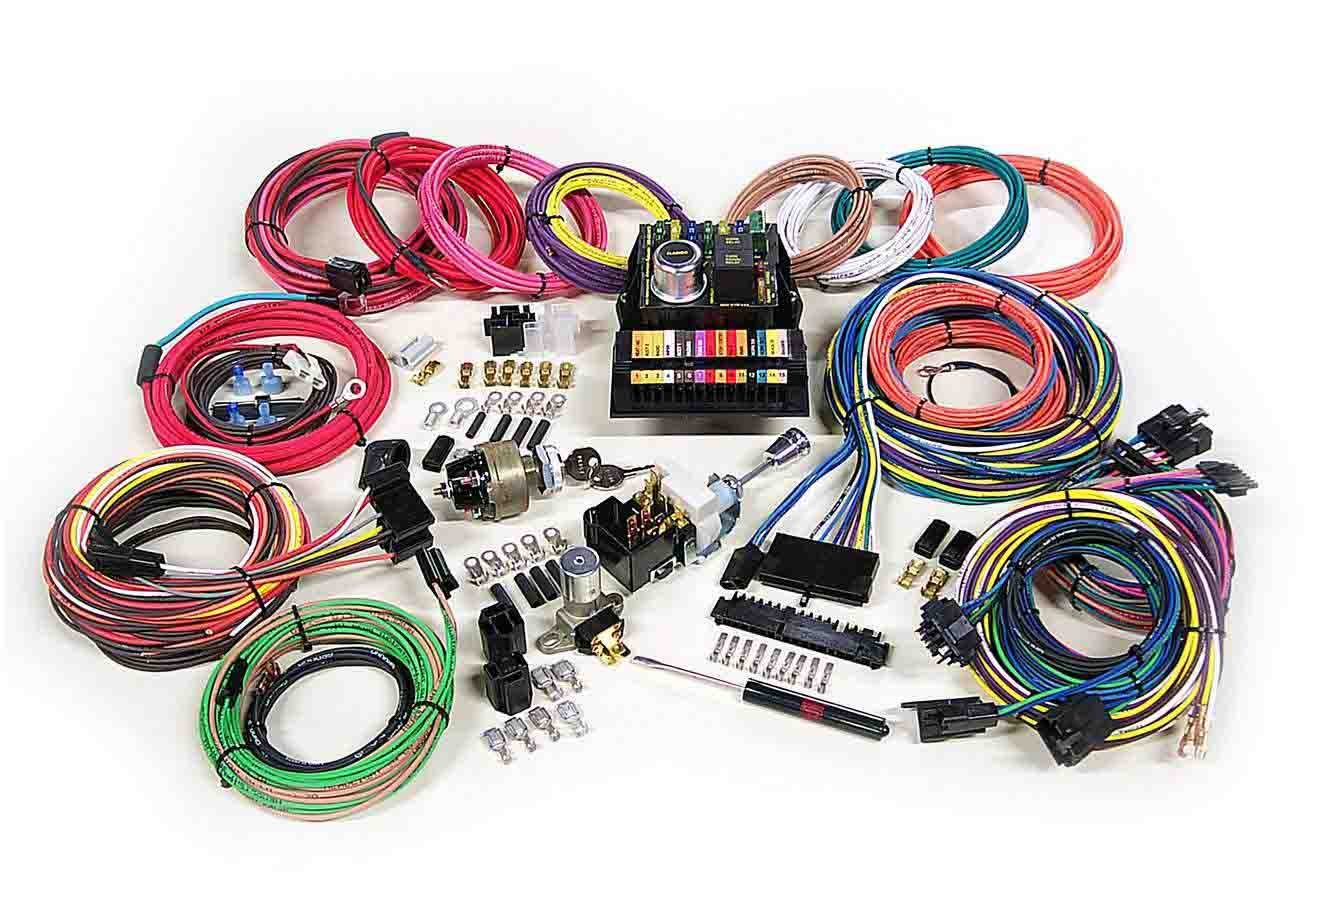 hight resolution of wiring kits for cars simple wiring schema ez 21 wiring harness diagram wiring harness kits for